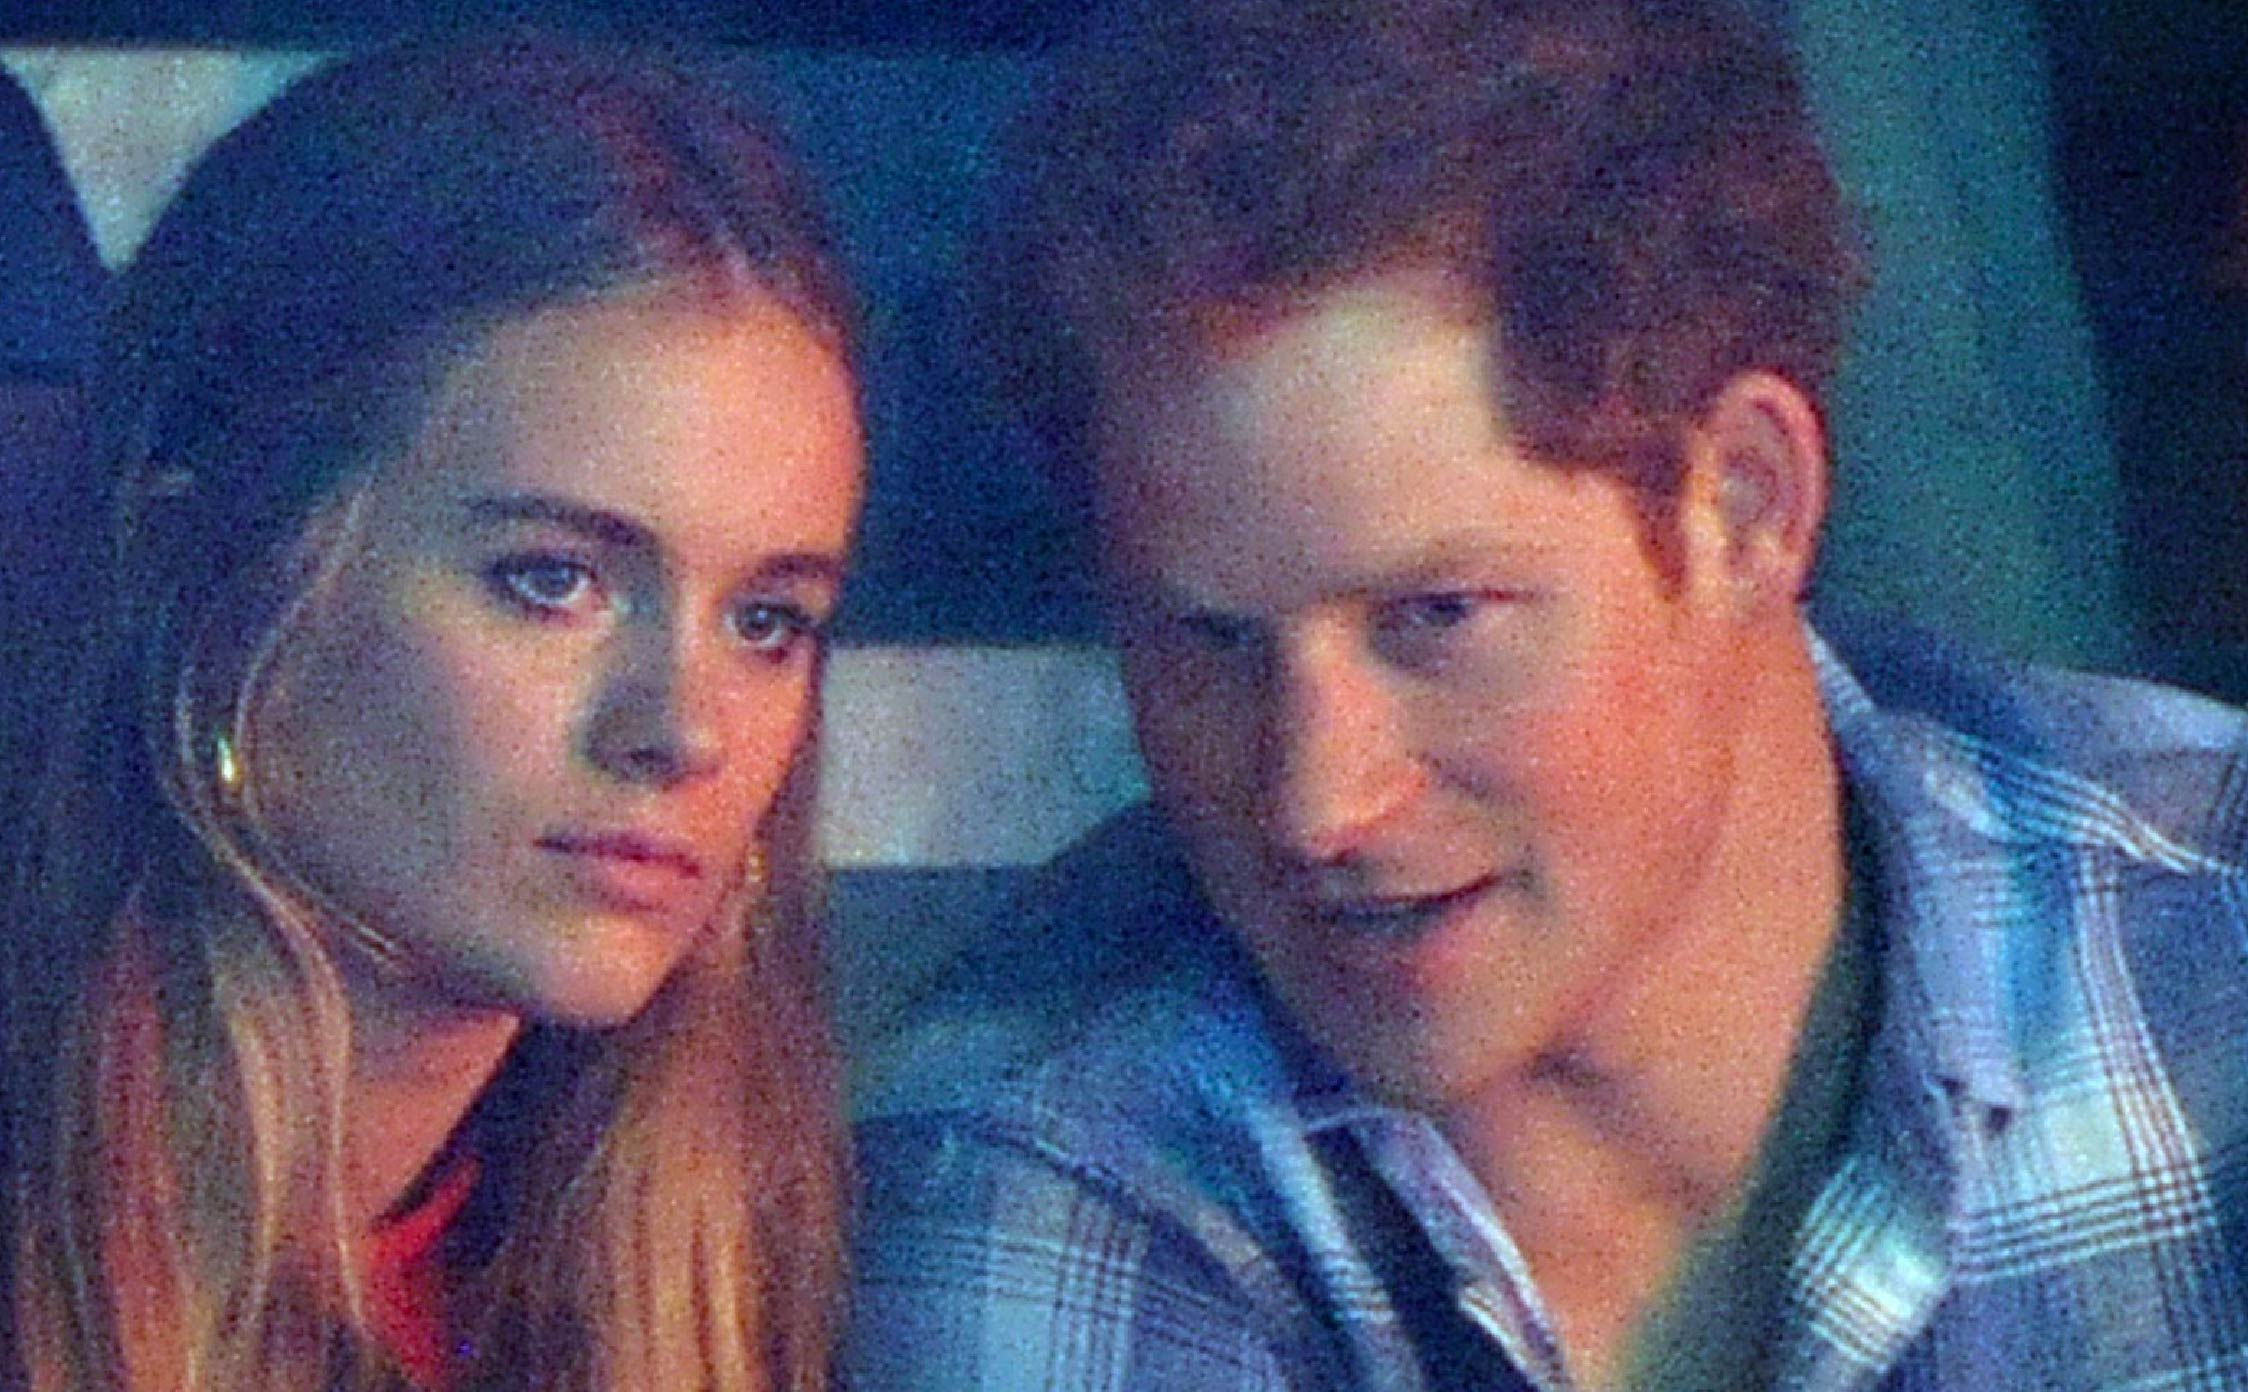 Prince Harry's Ex Reveals Real Reason They Broke Up and It's Rathe Revealing...